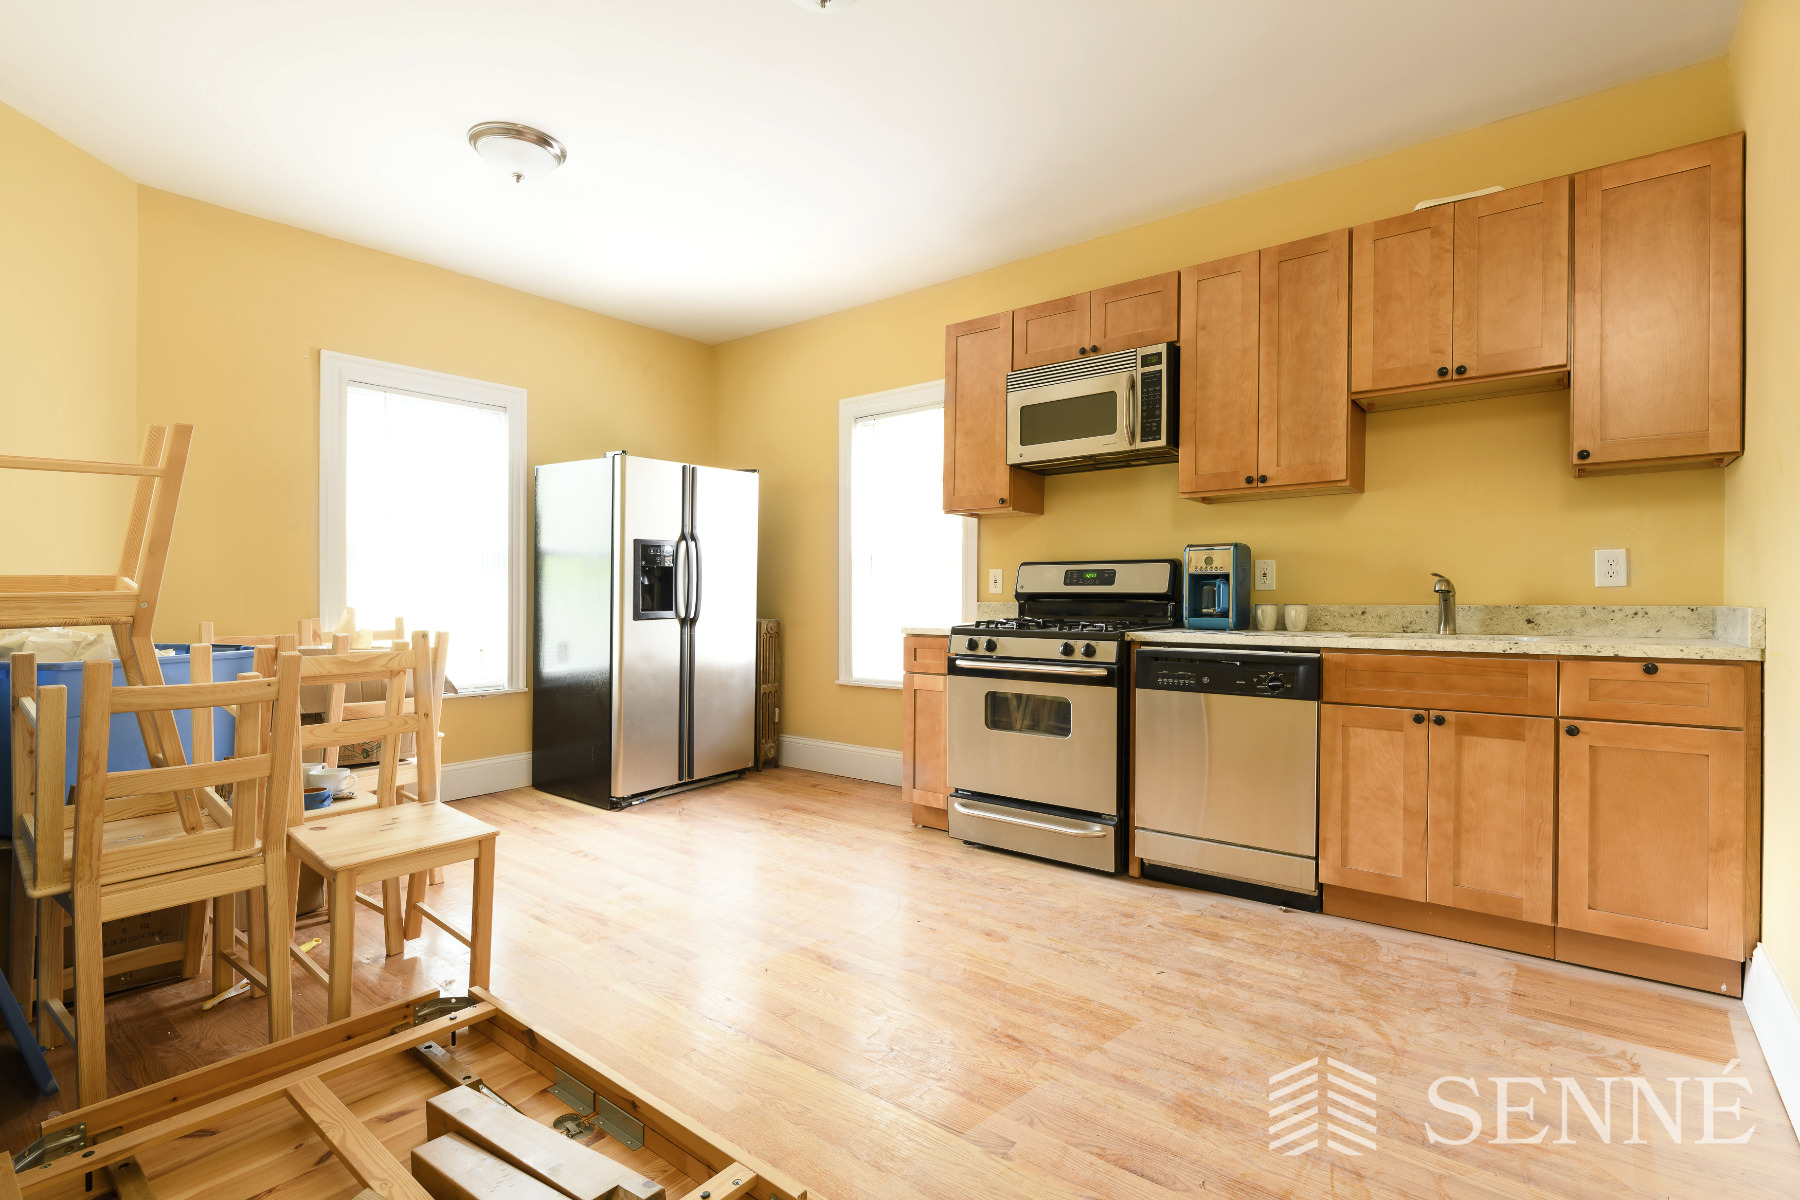 4 Beds, 1 Bath apartment in Somerville for $3,500